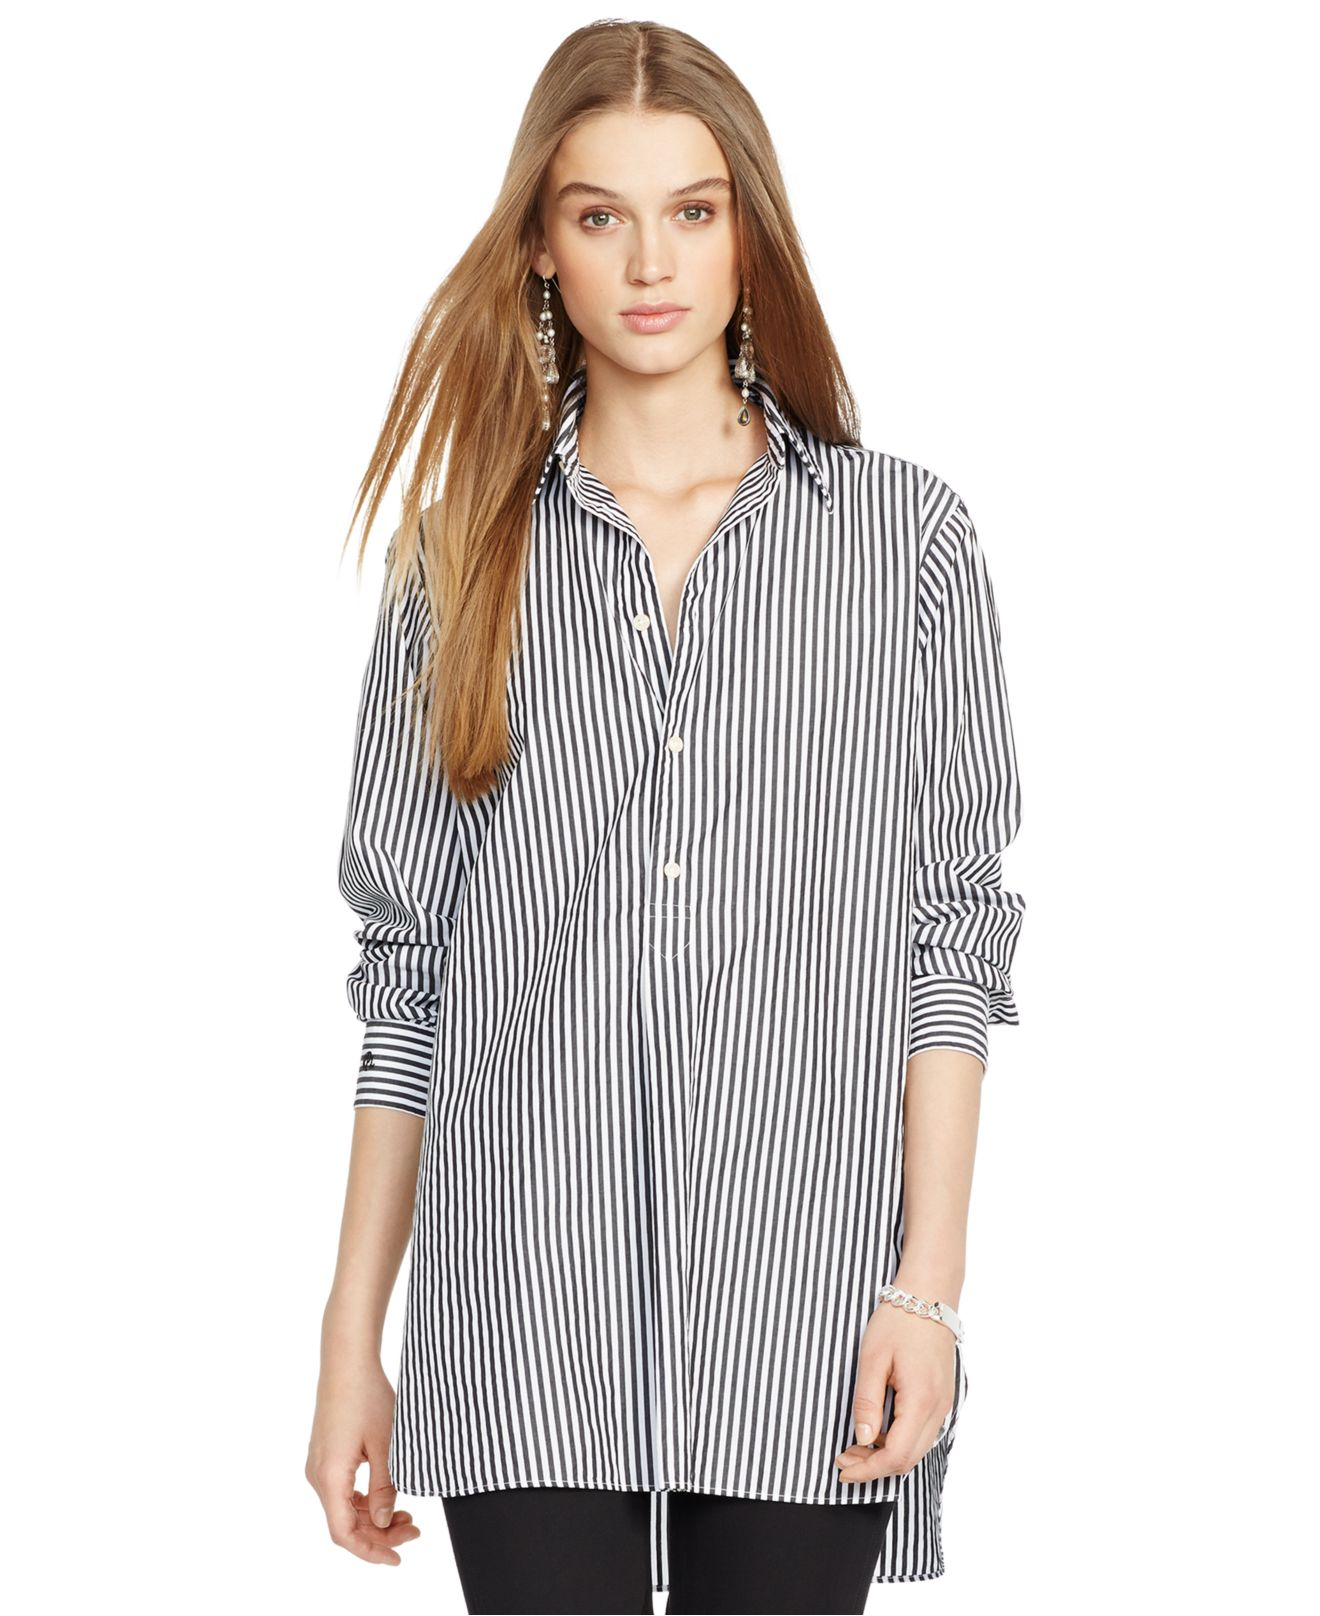 polo ralph lauren long sleeve striped poplin tunic in gray lyst. Black Bedroom Furniture Sets. Home Design Ideas